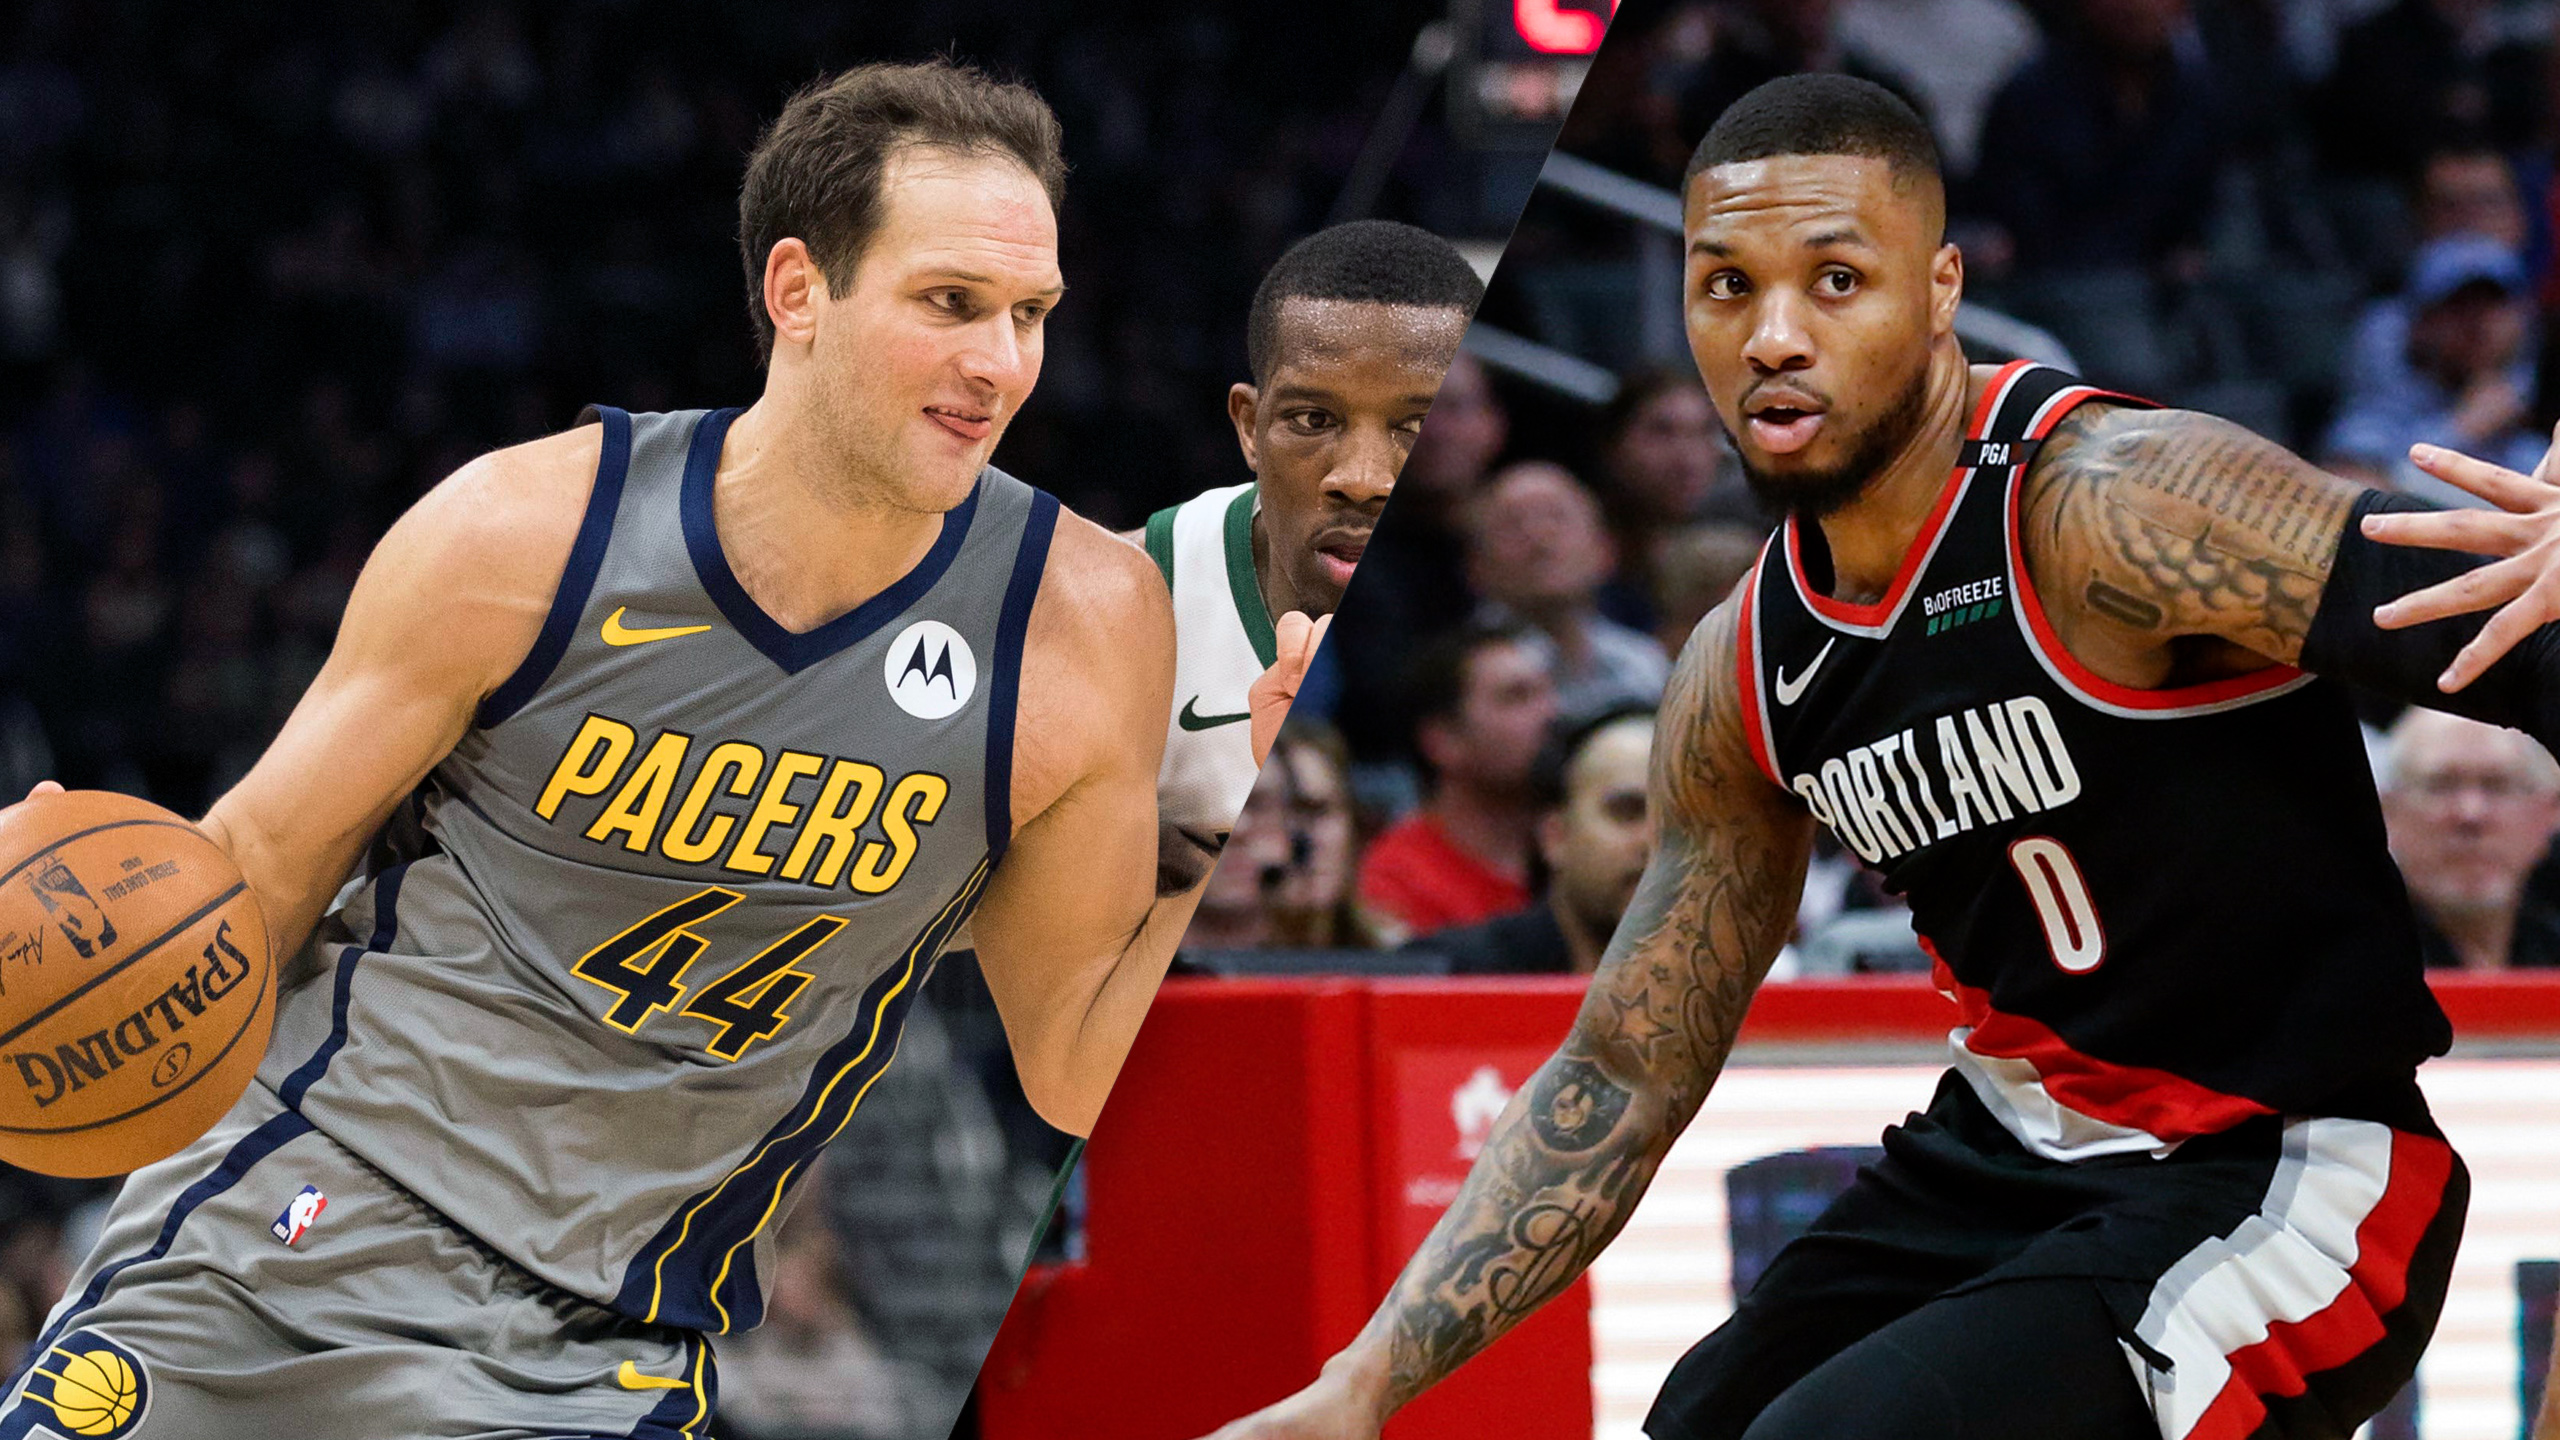 Indiana Pacers vs. Portland Trail Blazers (re-air)